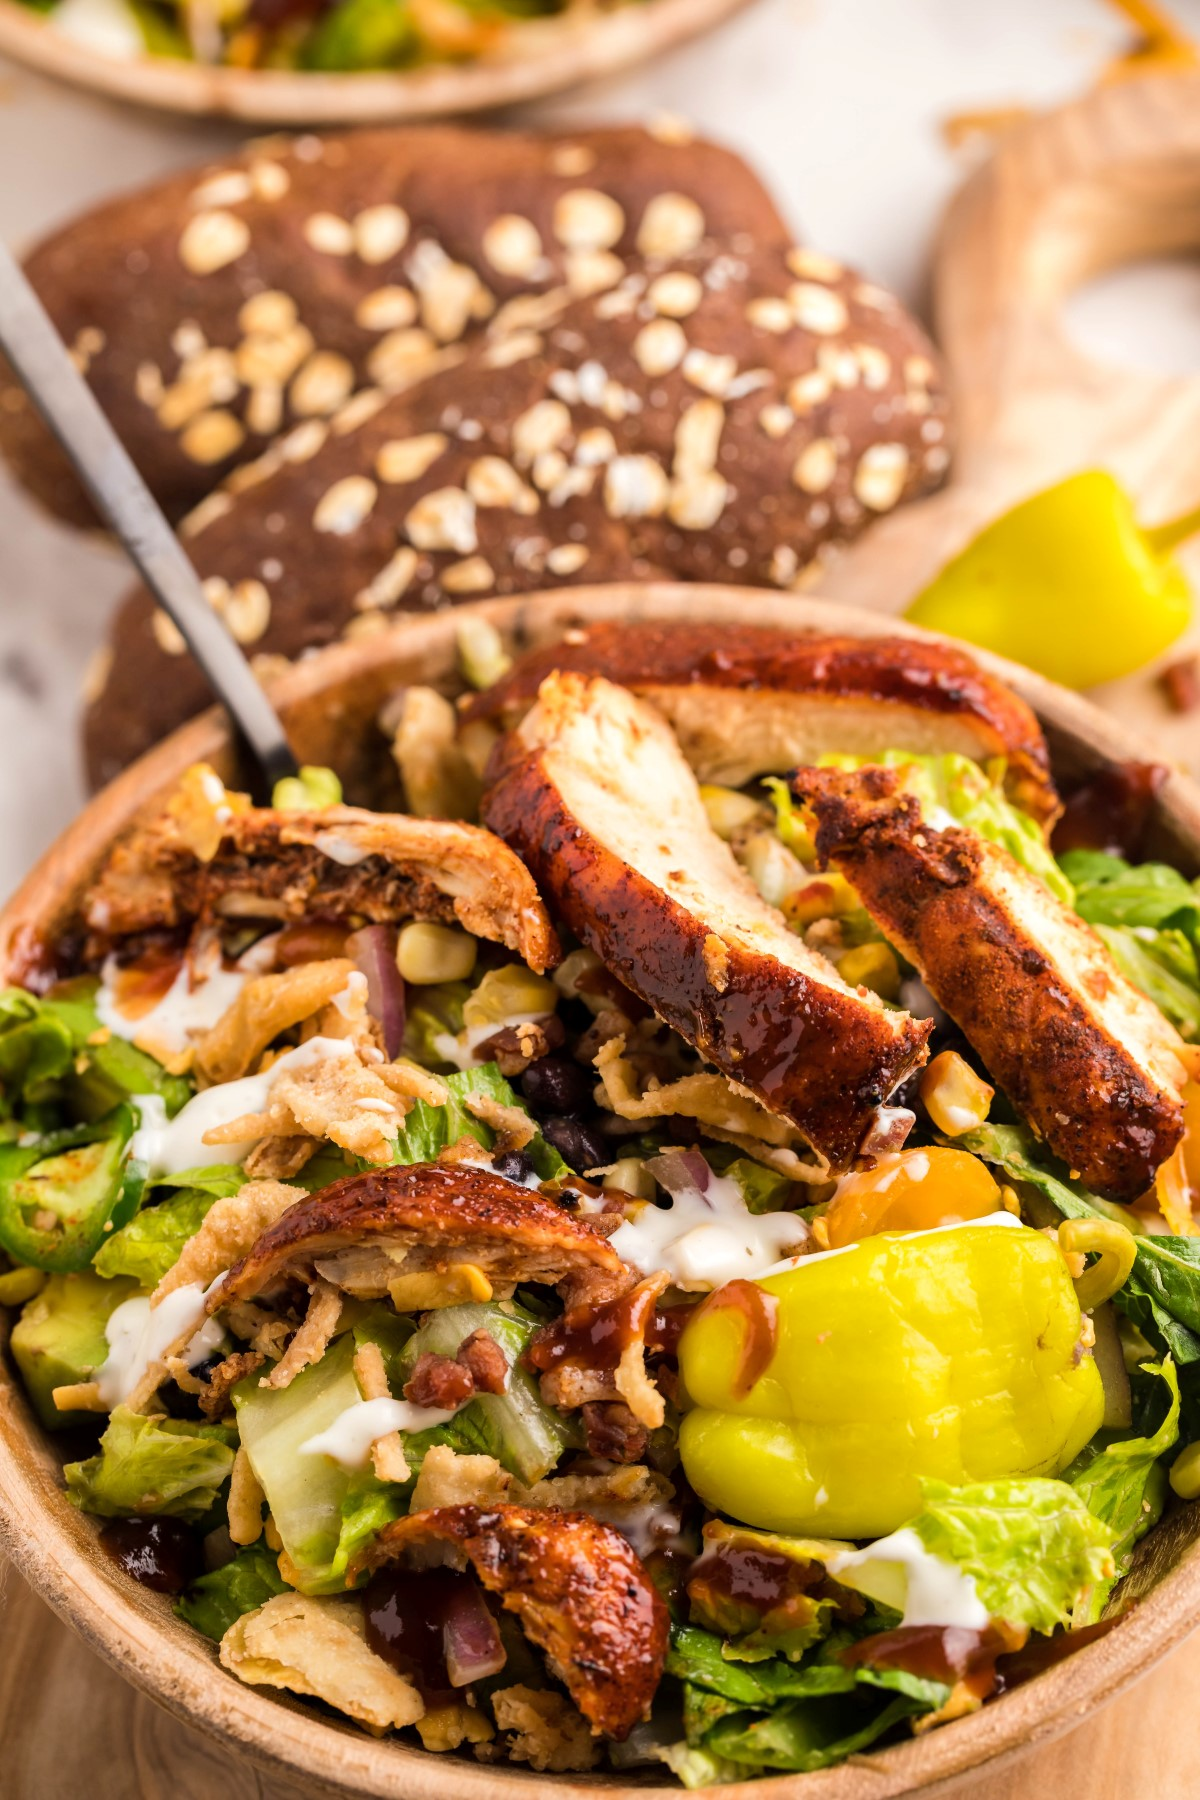 Bowl of grilled chicken salad with a fork and bread in the background.